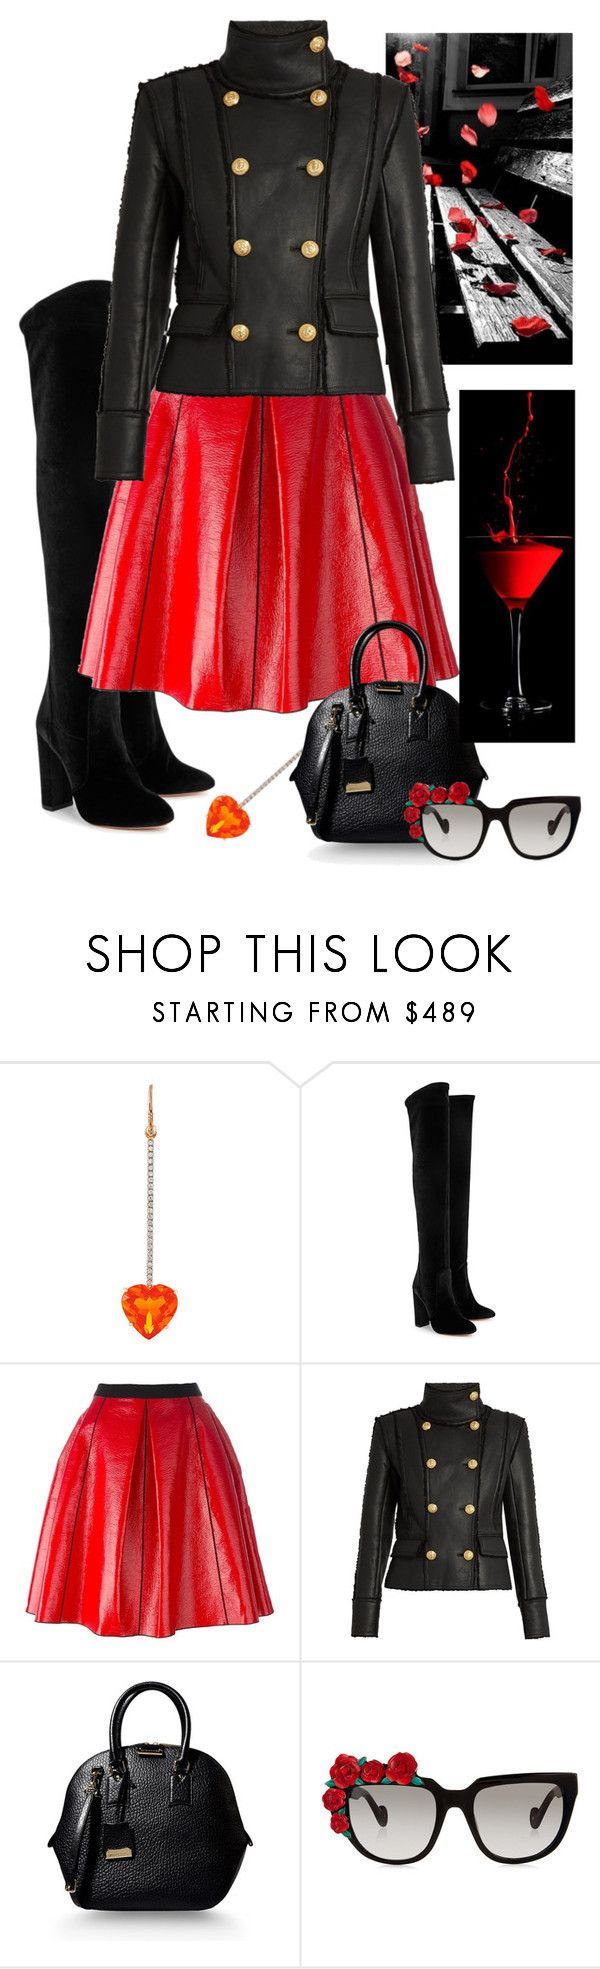 """""""Boots"""" by gagenna ❤ liked on Polyvore featuring Irene Neuwirth, Aquazzura, Antonio Marras, Marc Jacobs, Balmain, Burberry and Anna-Karin Karlsson"""